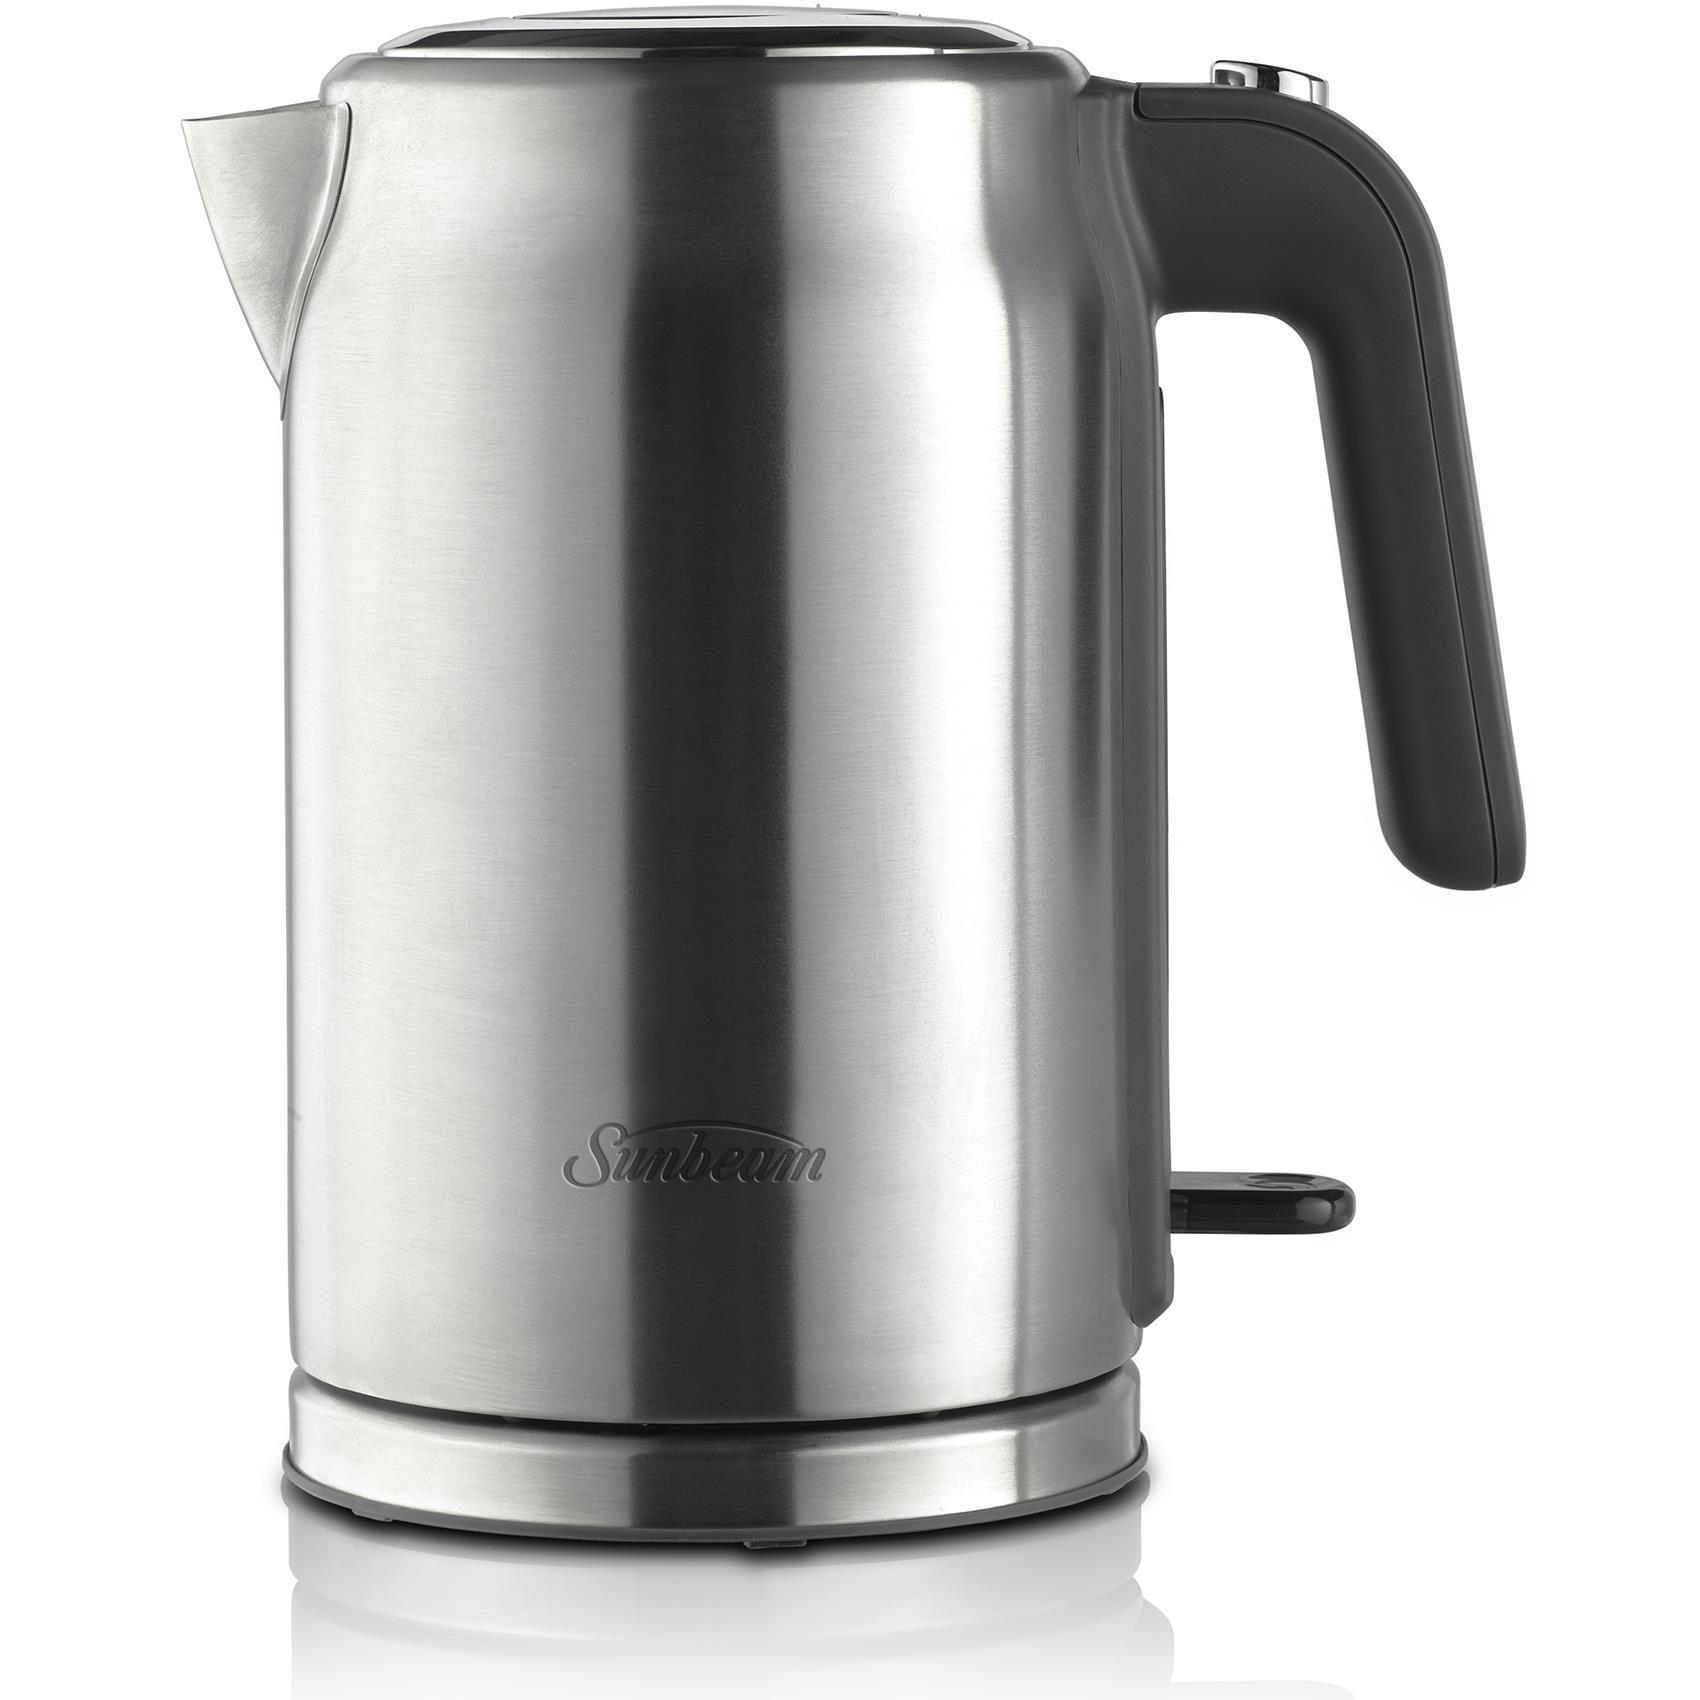 Sunbeam KE6451 Maestro Quiet Shield Kettle